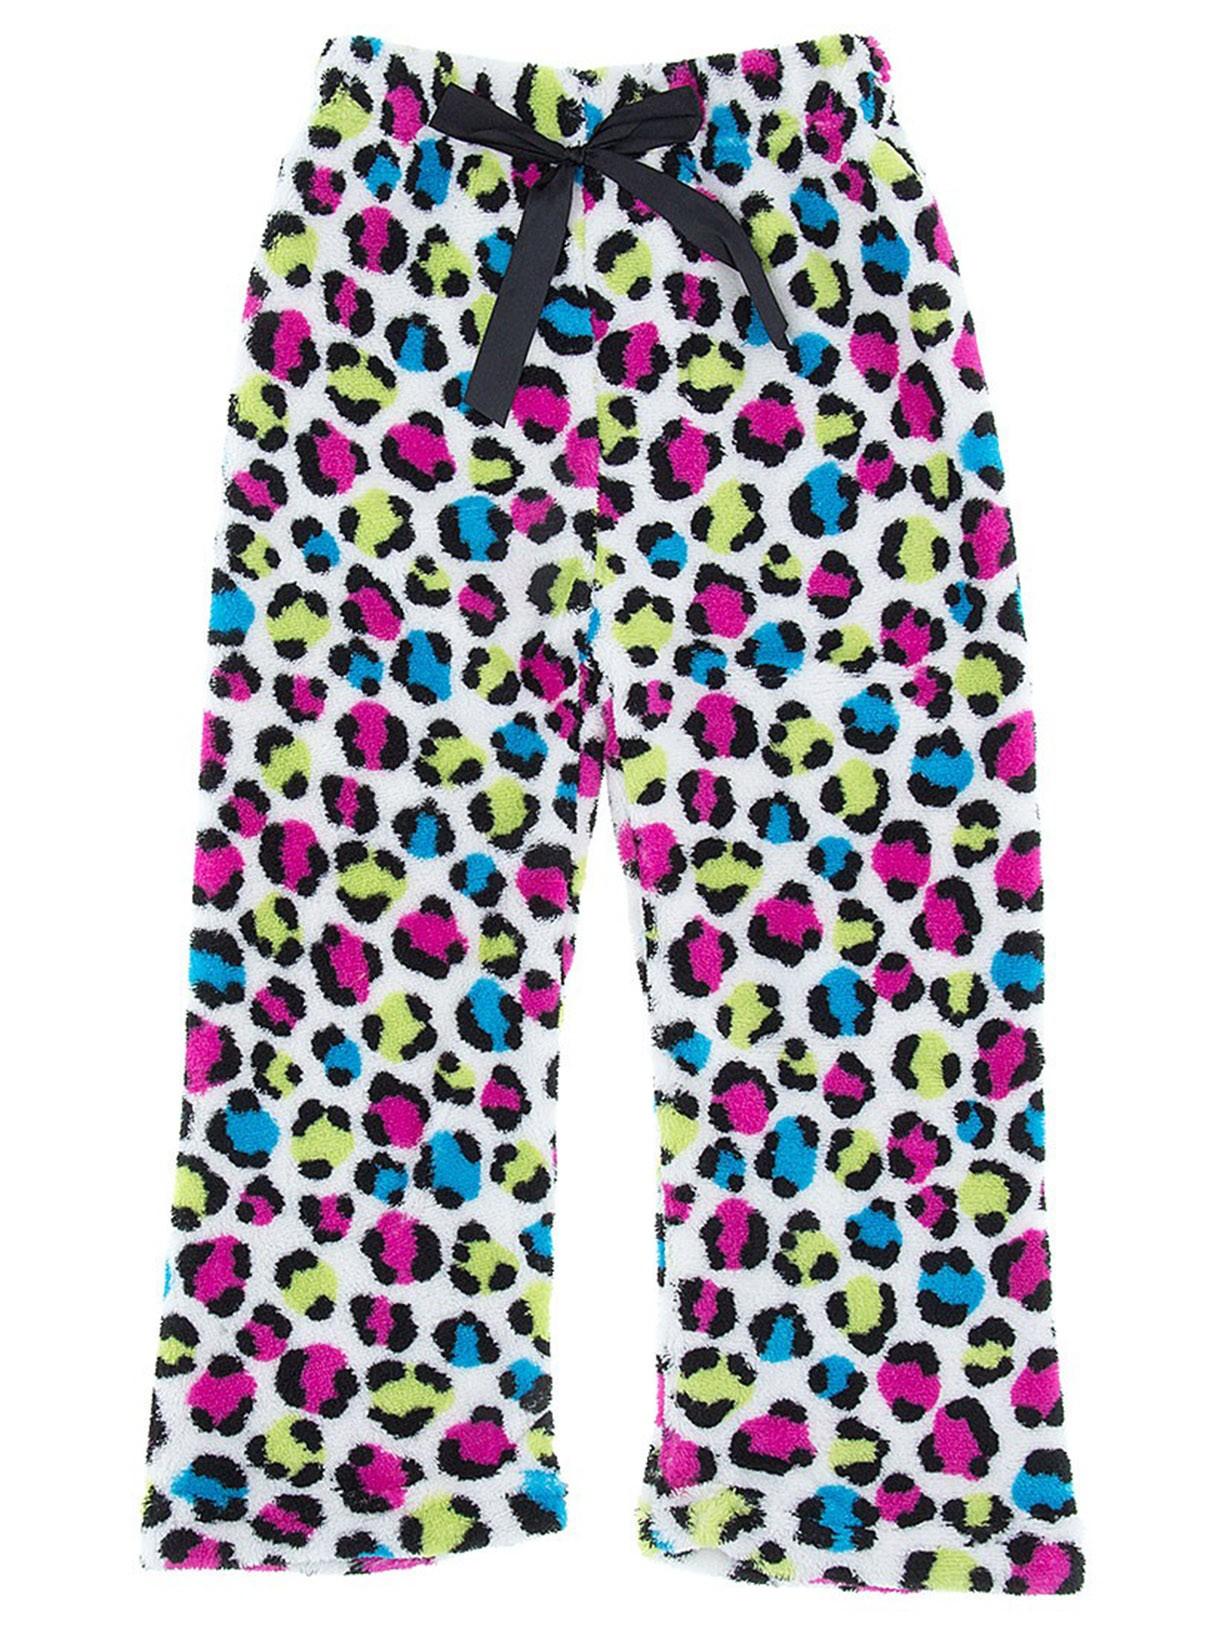 Sweet Sassy Girls Colorful Leopard Fleece Pajama Pants